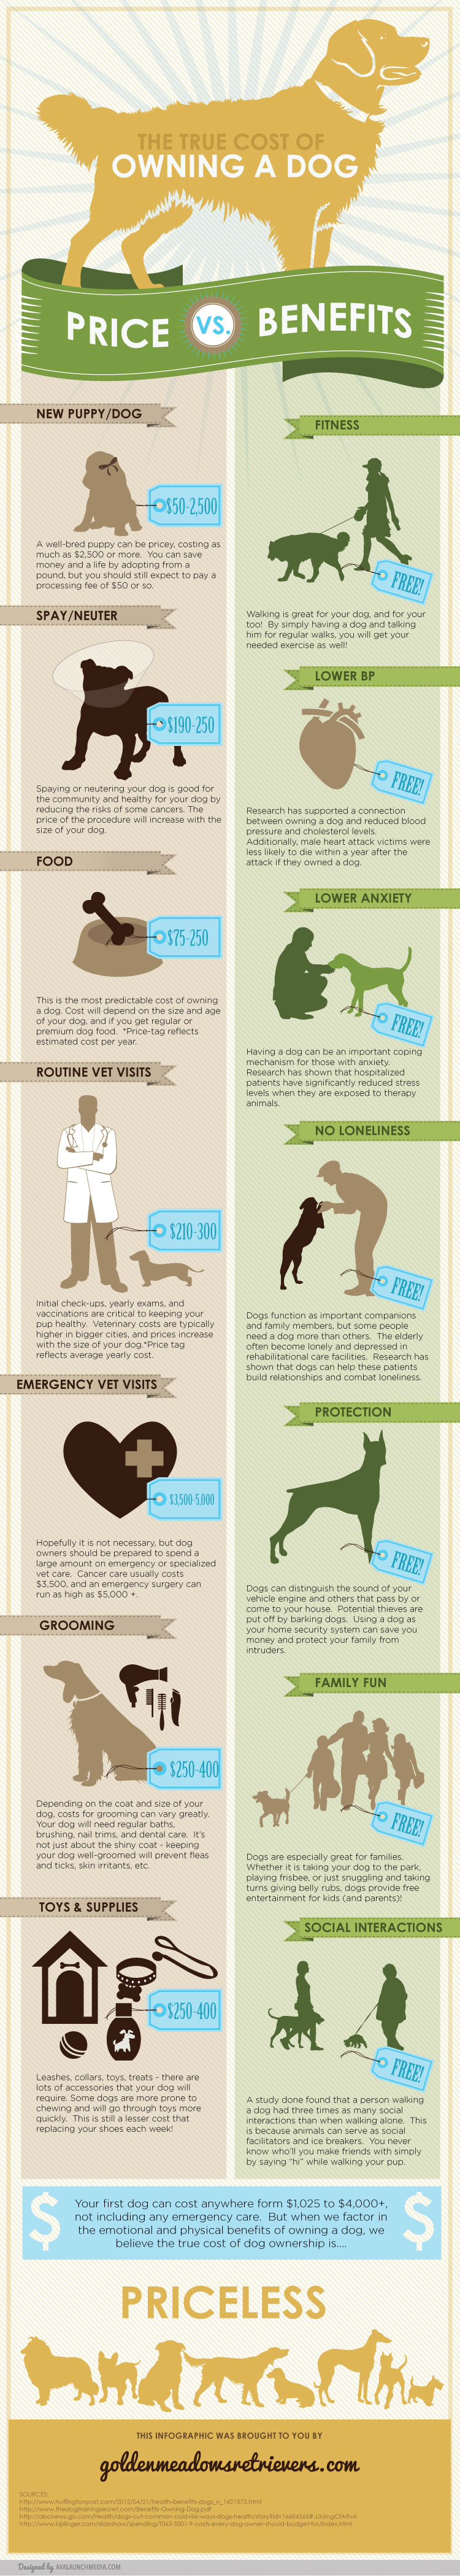 Bay Area Dog Training Primal Canine -The True Cost of Owning a Dog